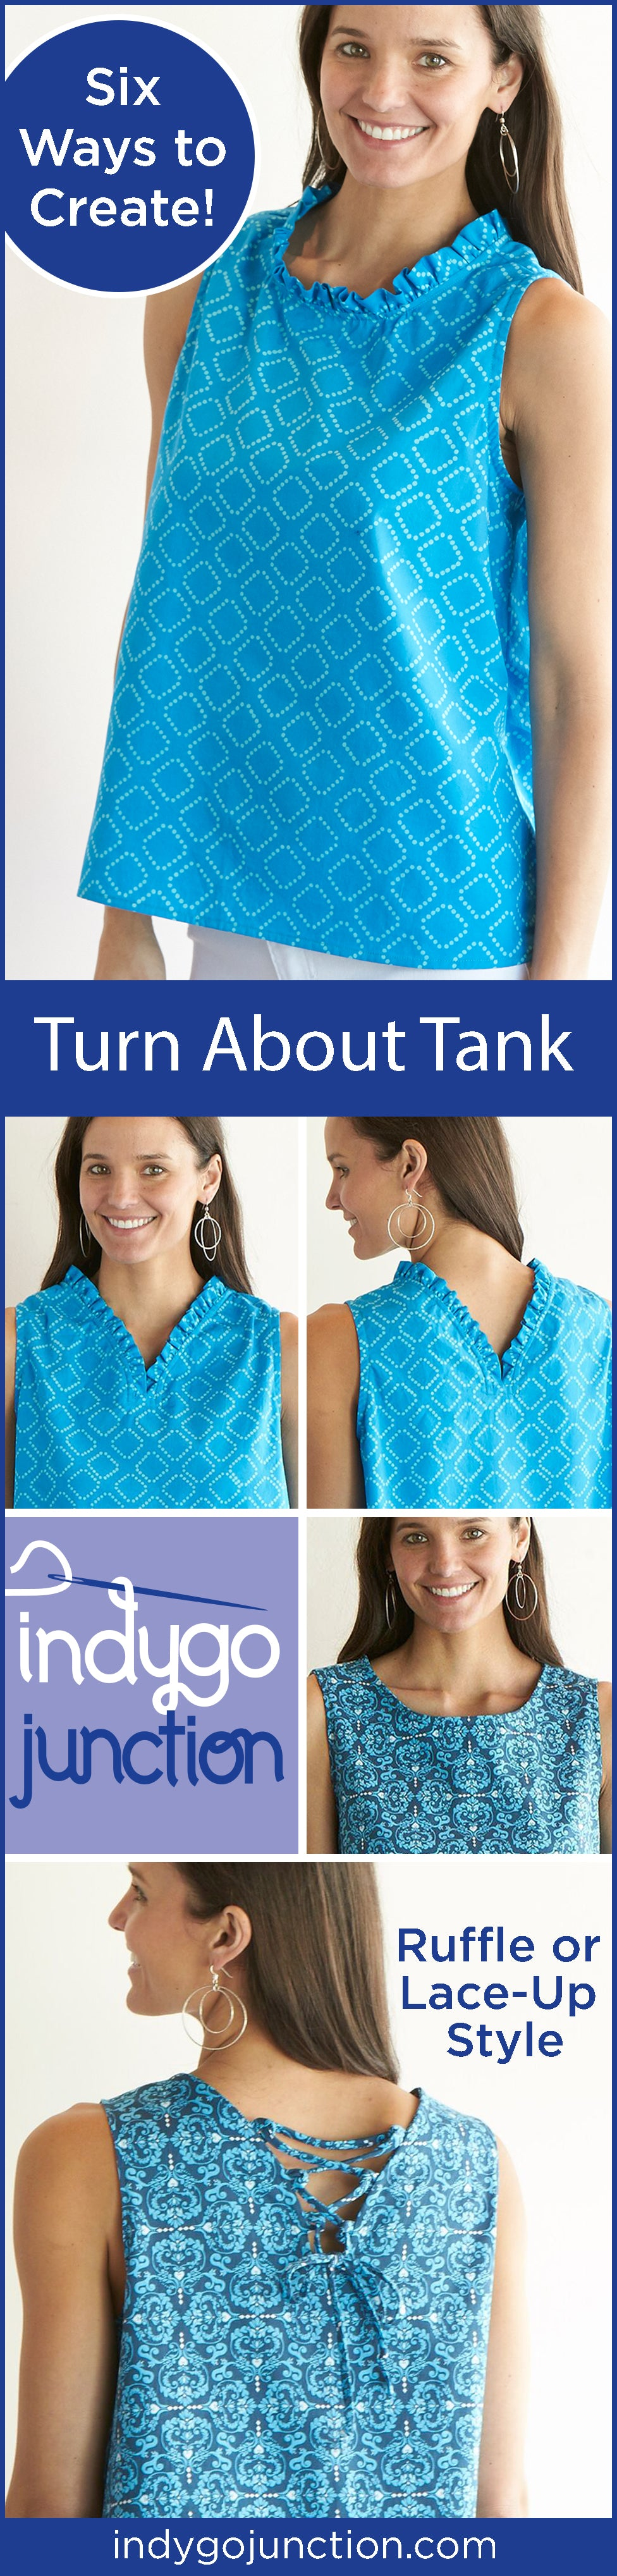 Indygo Junction's Turn About Tank is a stylish and breezy summer staple!